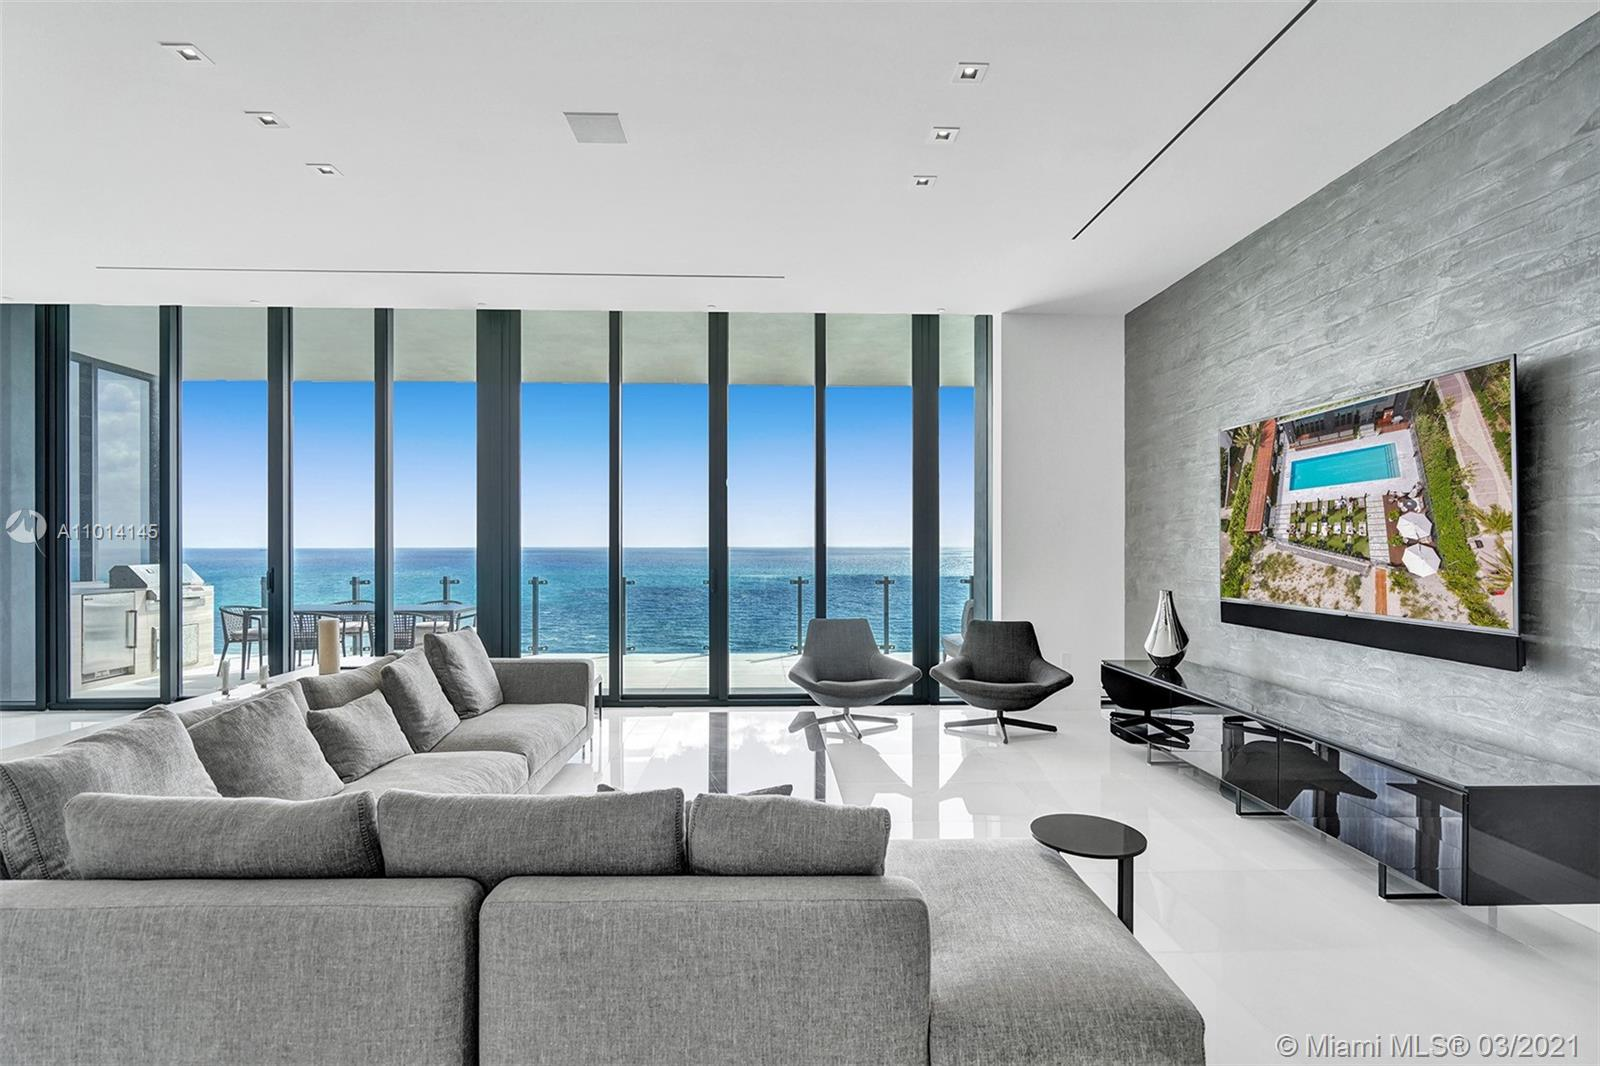 This magnificent FURNISHED ocean front apartment has 3 beds/ 3.5 baths + den. As soon as you arrive to the 23rd floor, You will be greeted by a private foyer and 12' ceilings.  The terrace, with summer kitchen & astonishing 720 sq has beautiful views. The Master Suite which is equipped with a midnight bar, spa-like bathroom and an Expansive walk-in closet w/leather inserts is just exceptional. The interior has been all decorated with B&B  Italia furniture and  the home features luxury finishes such as marble & wood floors, , walk in closets, smart home system & much more. The unit also has a laundry room. STORAGE INCLUDED! Amenities include infinity edge pool, breakfast for owners, food/beverage service, car automated parking system, sauna/steam & fitness center. 3 valet parking